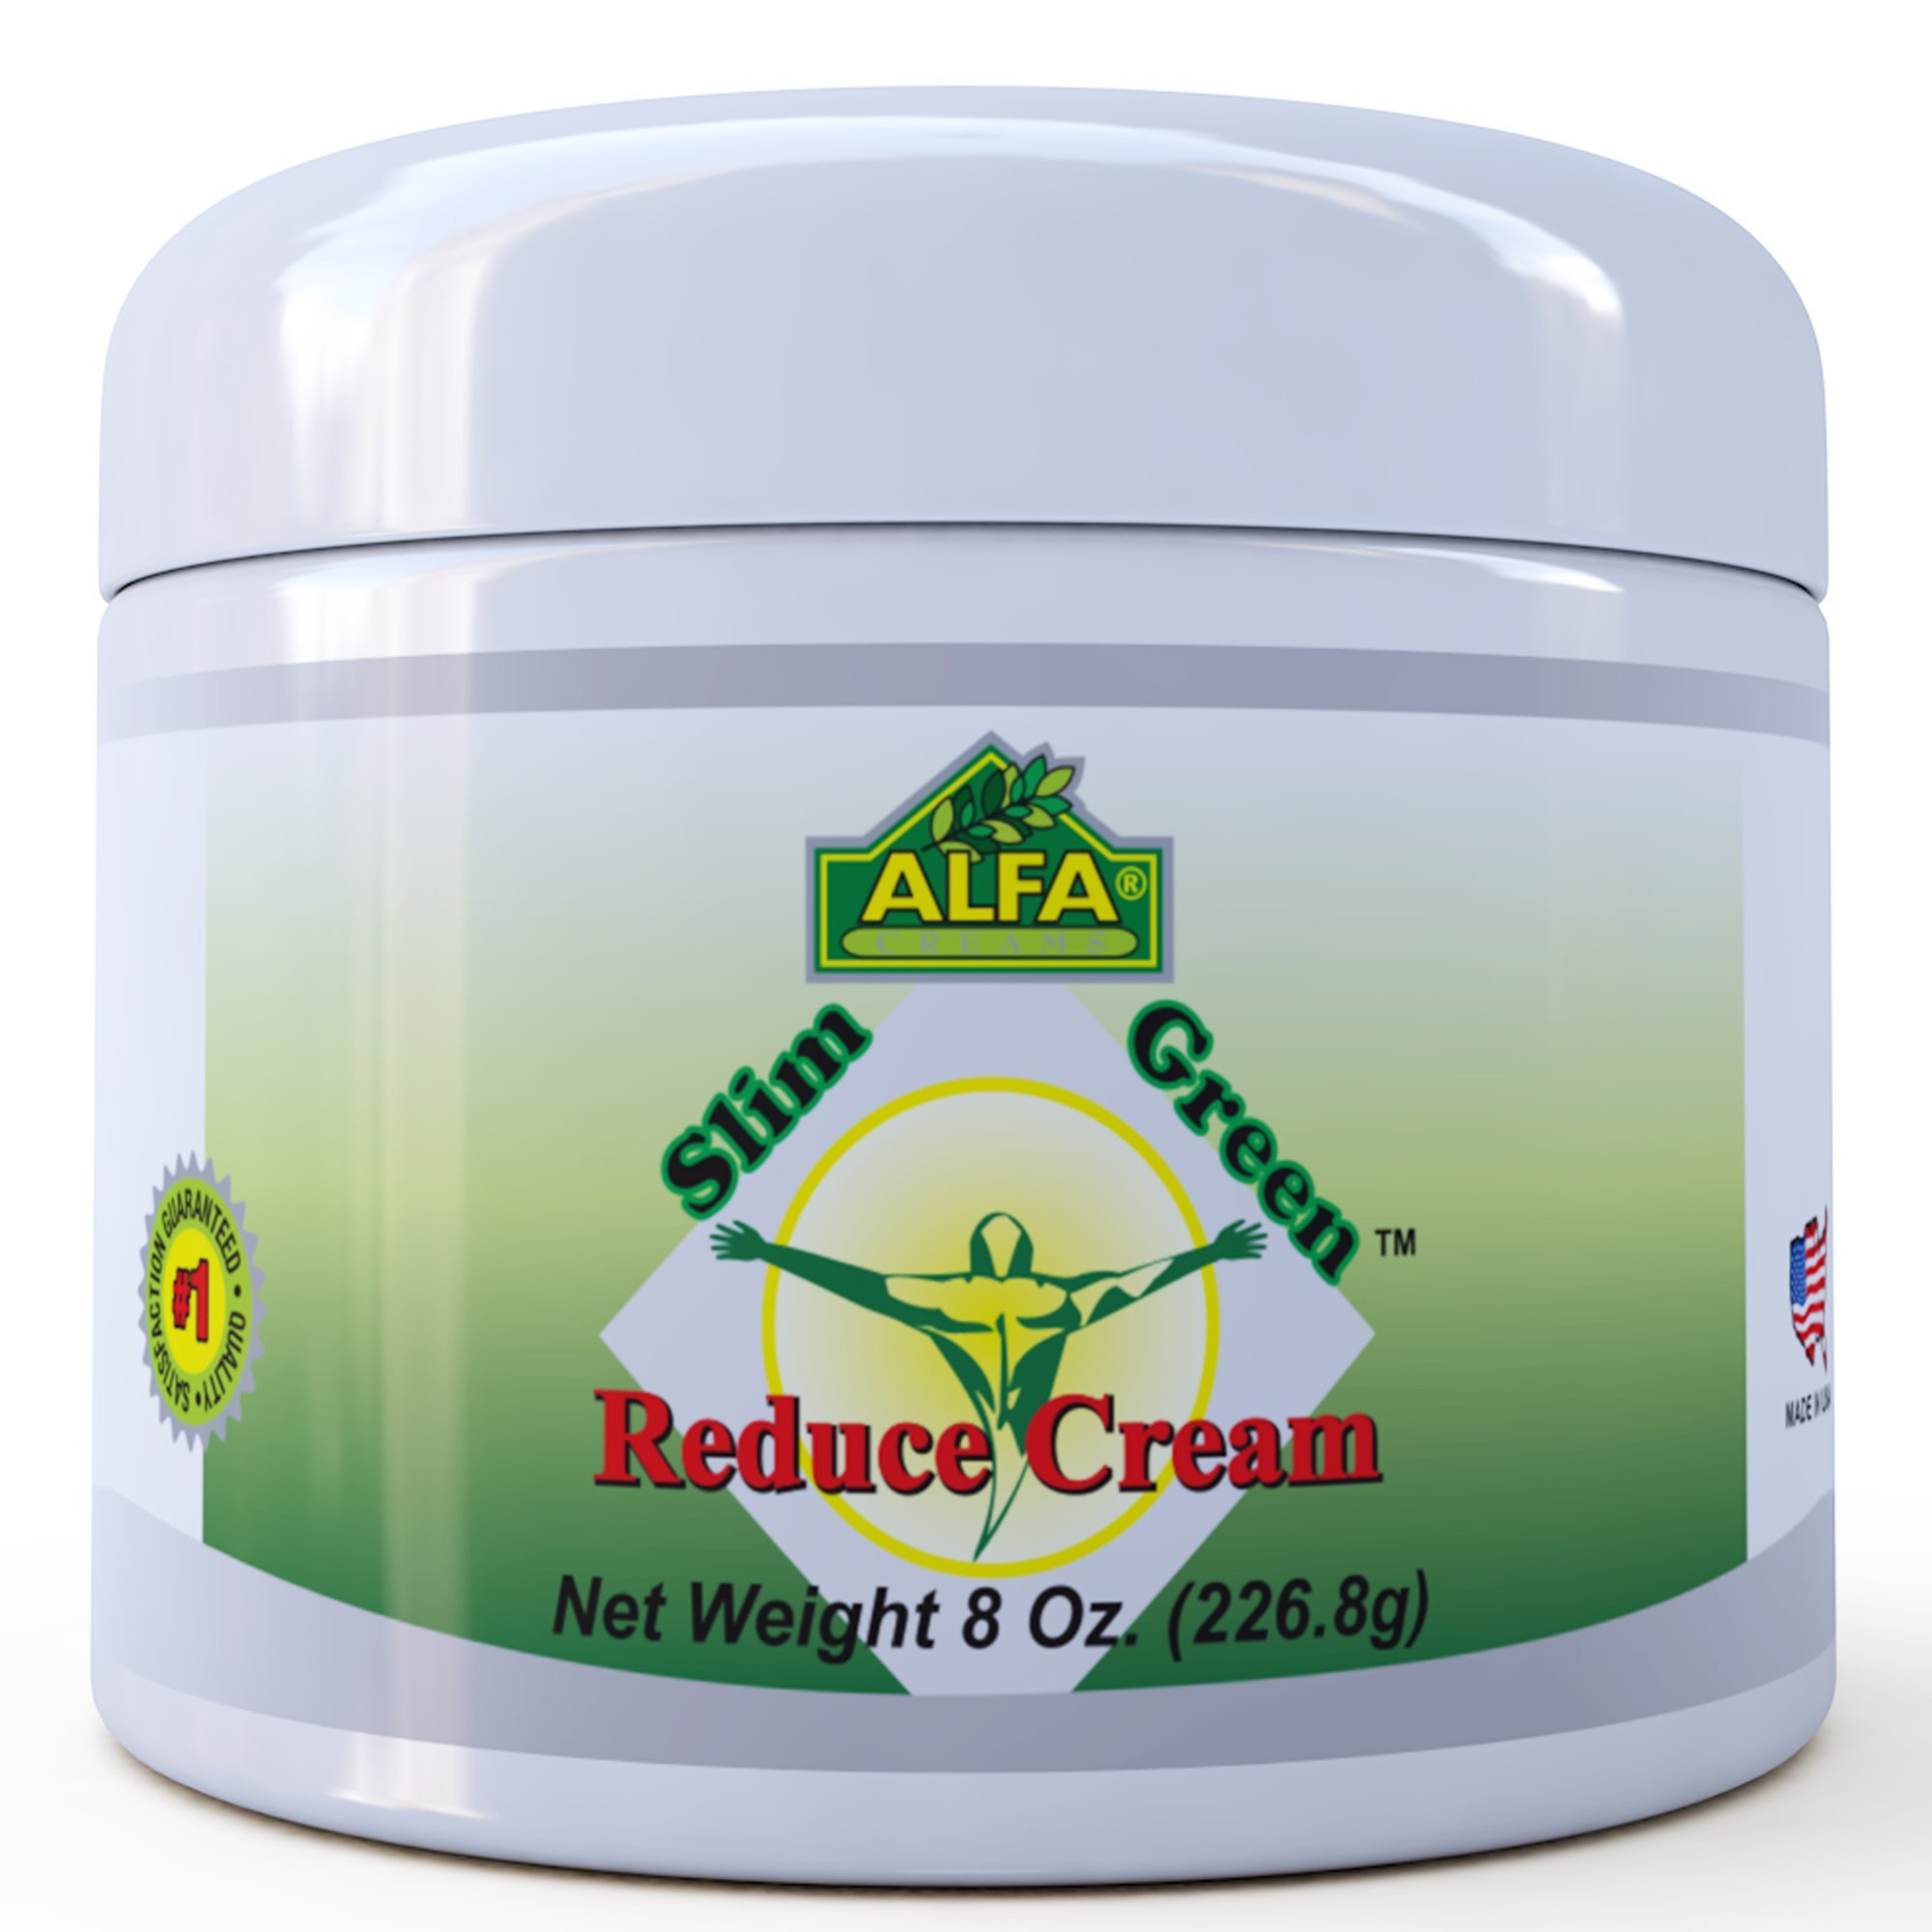 Premium Slim Green Reduce Cream By Alfa Vitamins - Weight Loss & Fat Burning Support For